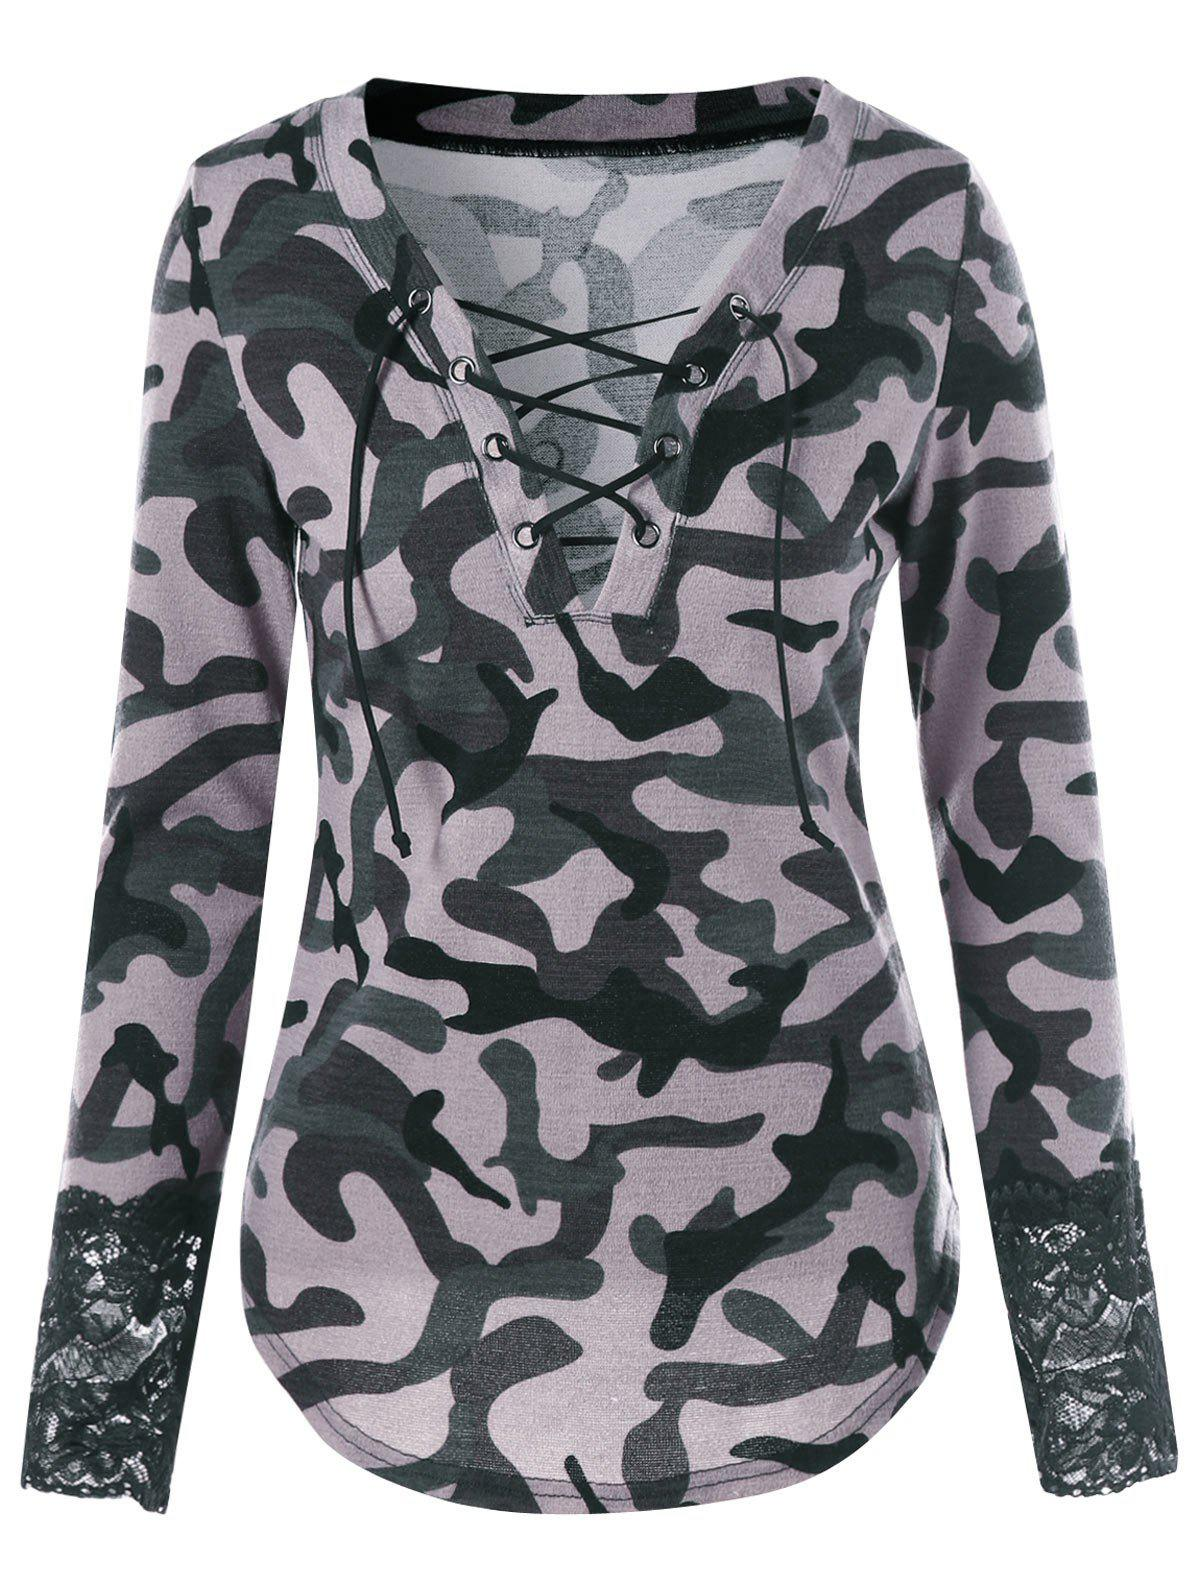 Lace Up Plunging Camouflage T-shirtWOMEN<br><br>Size: XL; Color: ACU CAMOUFLAGE; Material: Polyester,Spandex; Shirt Length: Regular; Sleeve Length: Full; Collar: Plunging Neck; Style: Fashion; Embellishment: Criss-Cross,Lace; Pattern Type: Camouflage; Season: Fall,Spring; Weight: 0.2650kg; Package Contents: 1 x T-shirt;